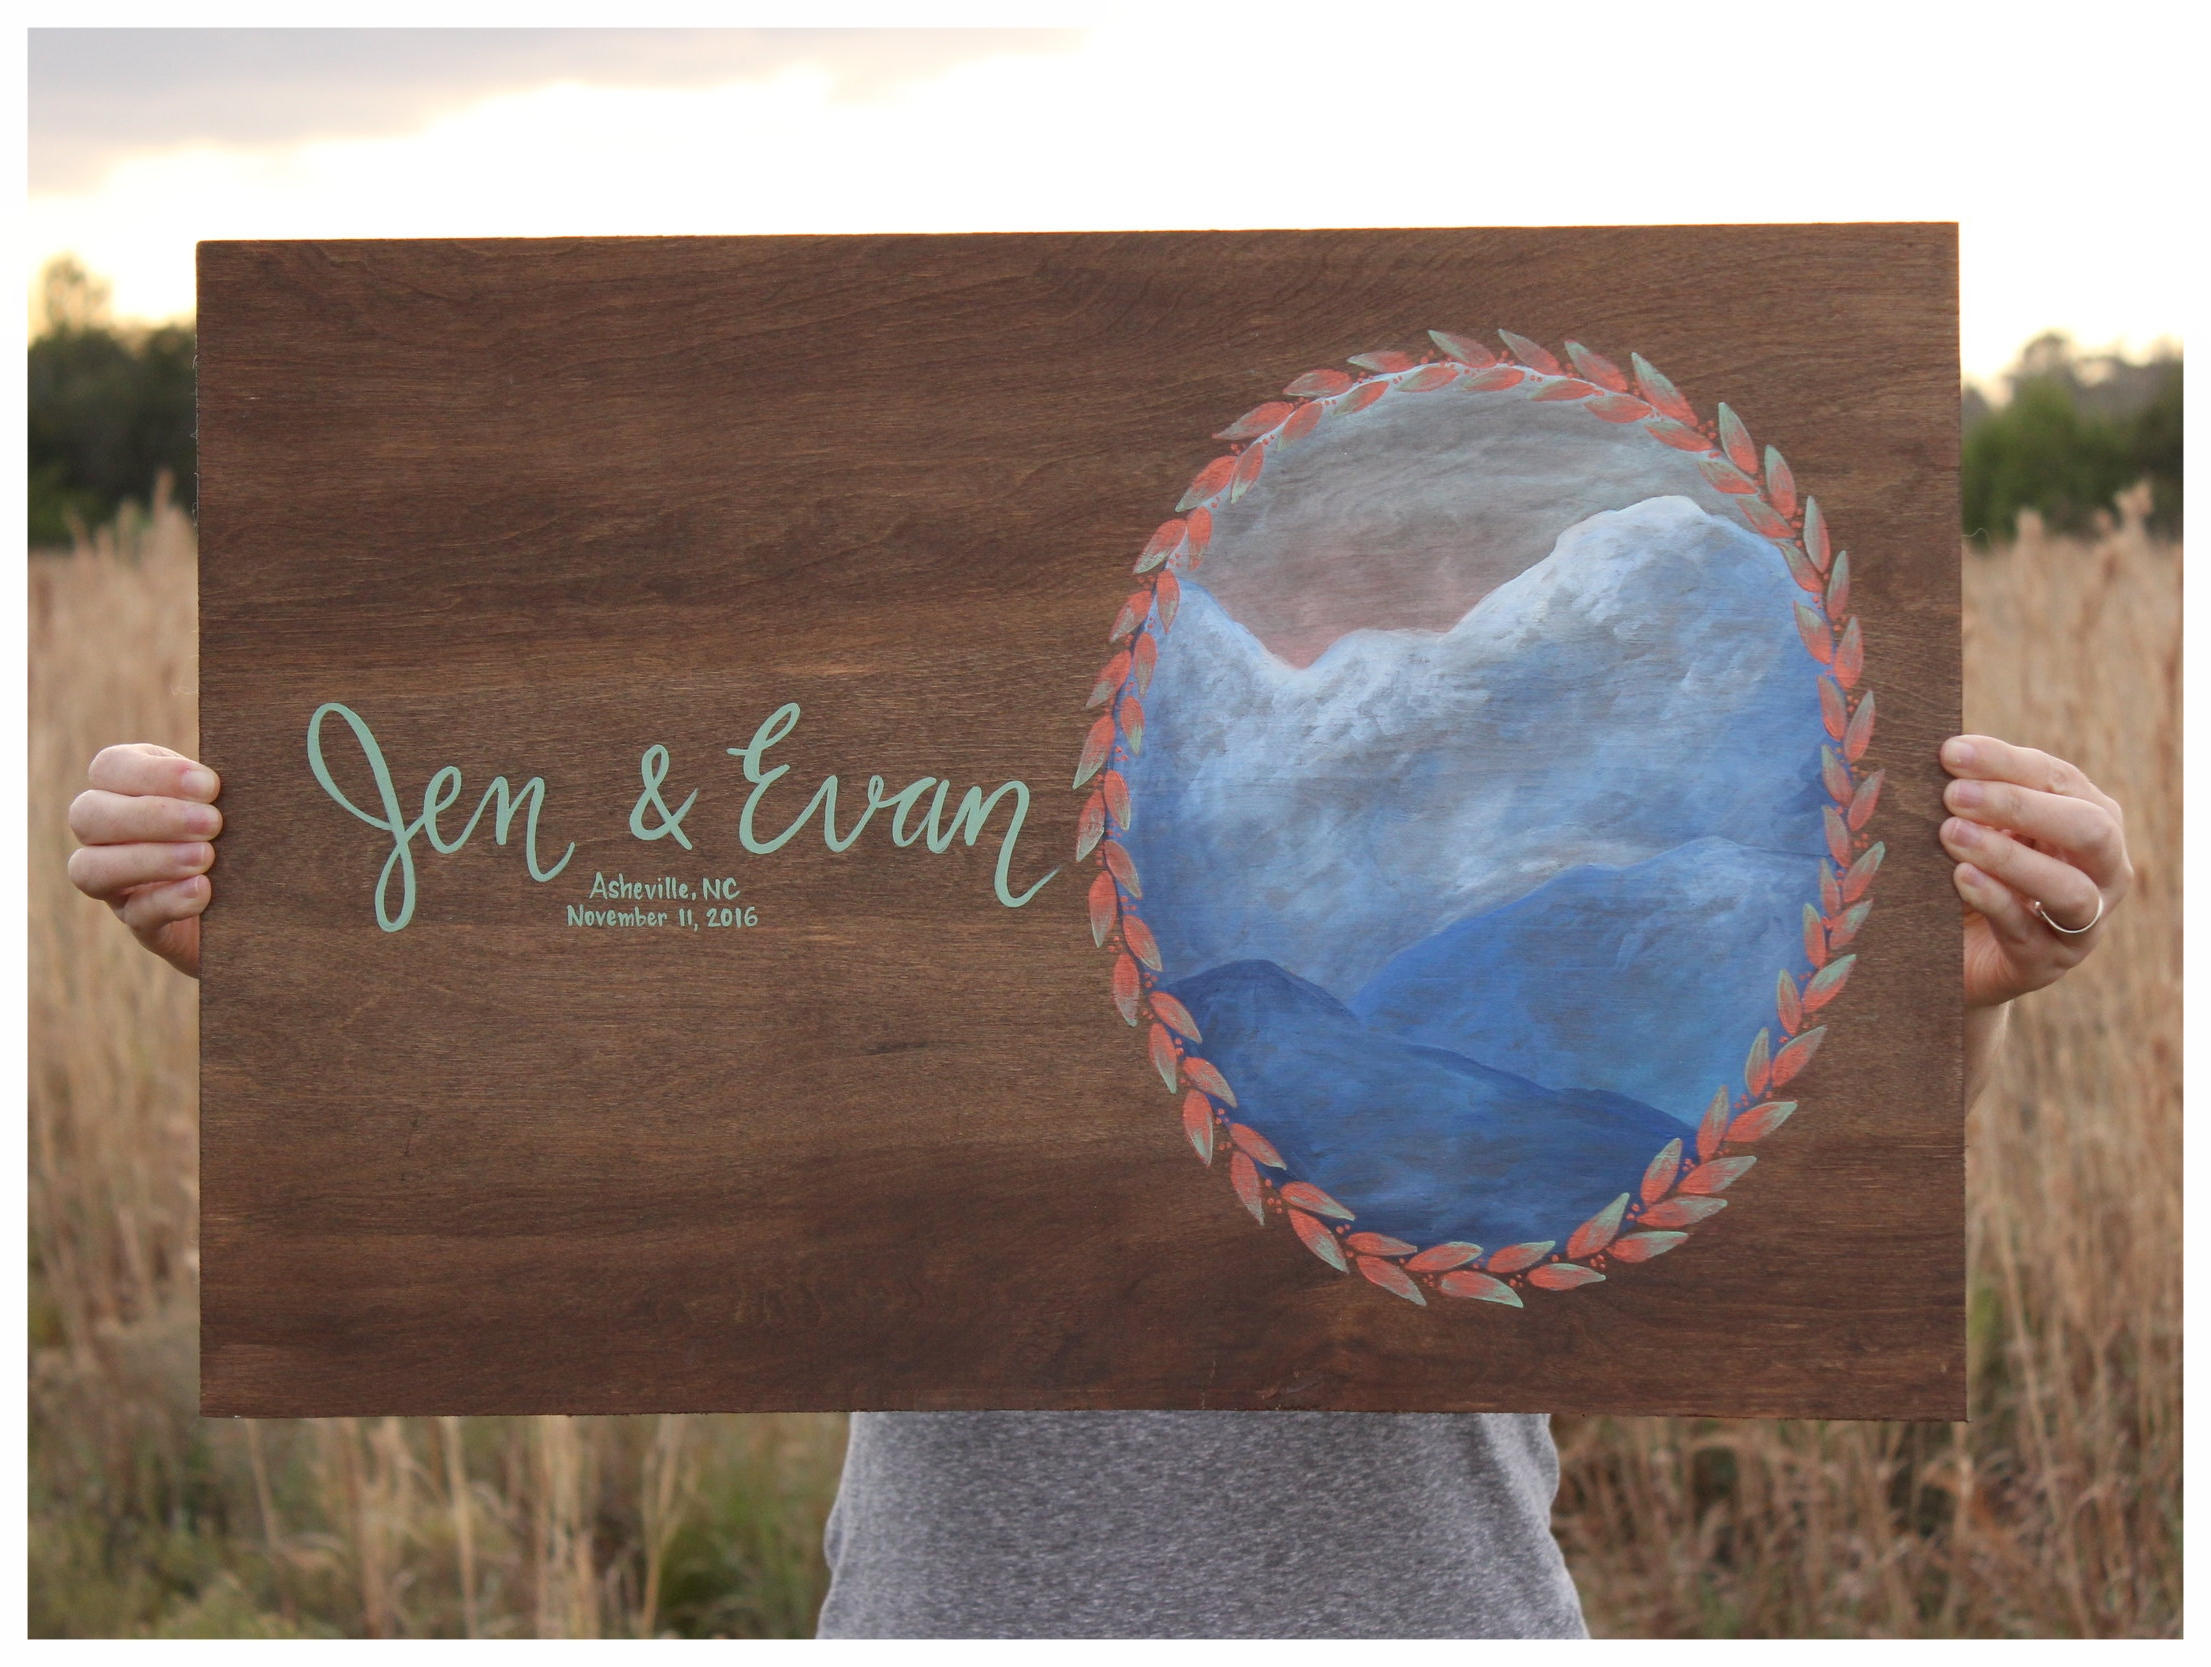 Wedding Guest Book Paintings - Instead of a traditional guest book that you'll put on a shelf and never look at again, these original, personalized paintings become meaningful heirlooms once they're signed by all your loved ones on your wedding day.